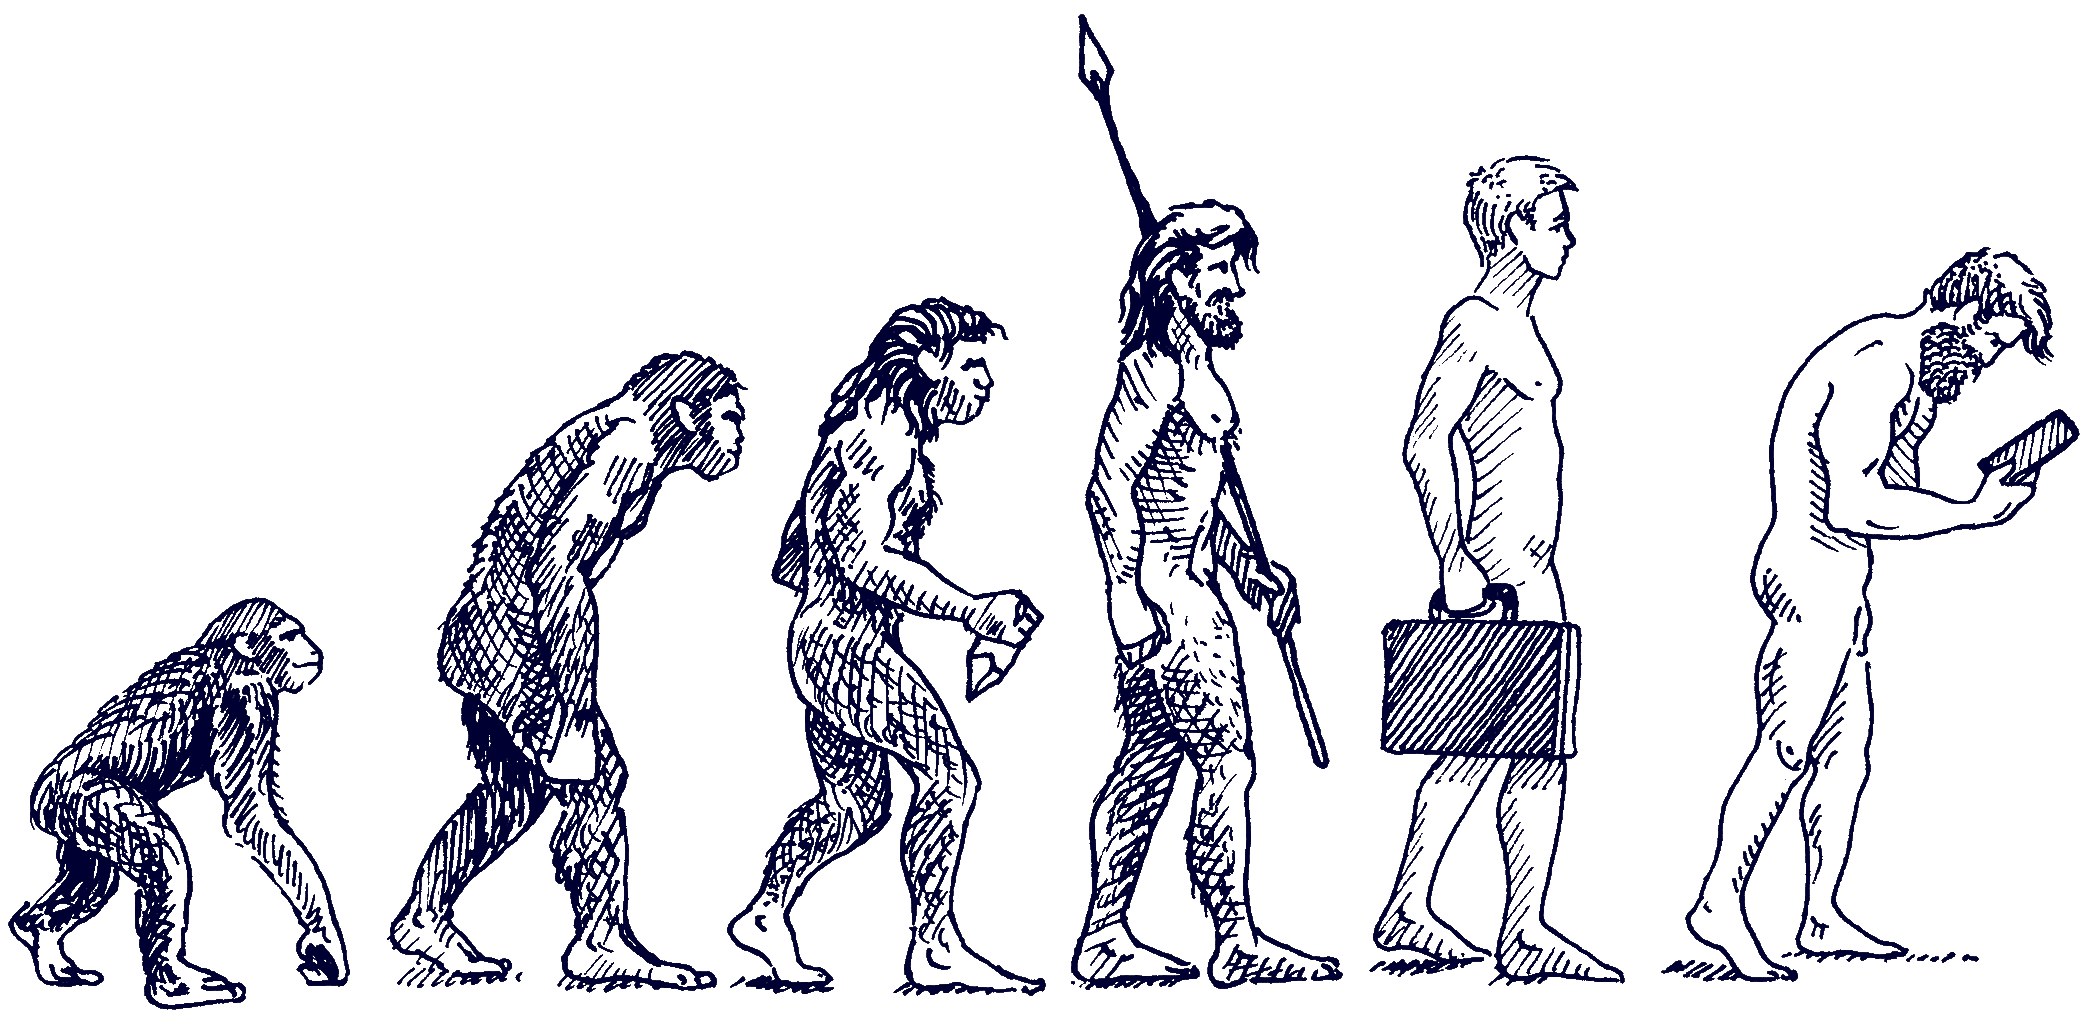 Arbeit, Digitale Evolution | Recht 4.0, Illustration: Karlheinz Wasserbacher